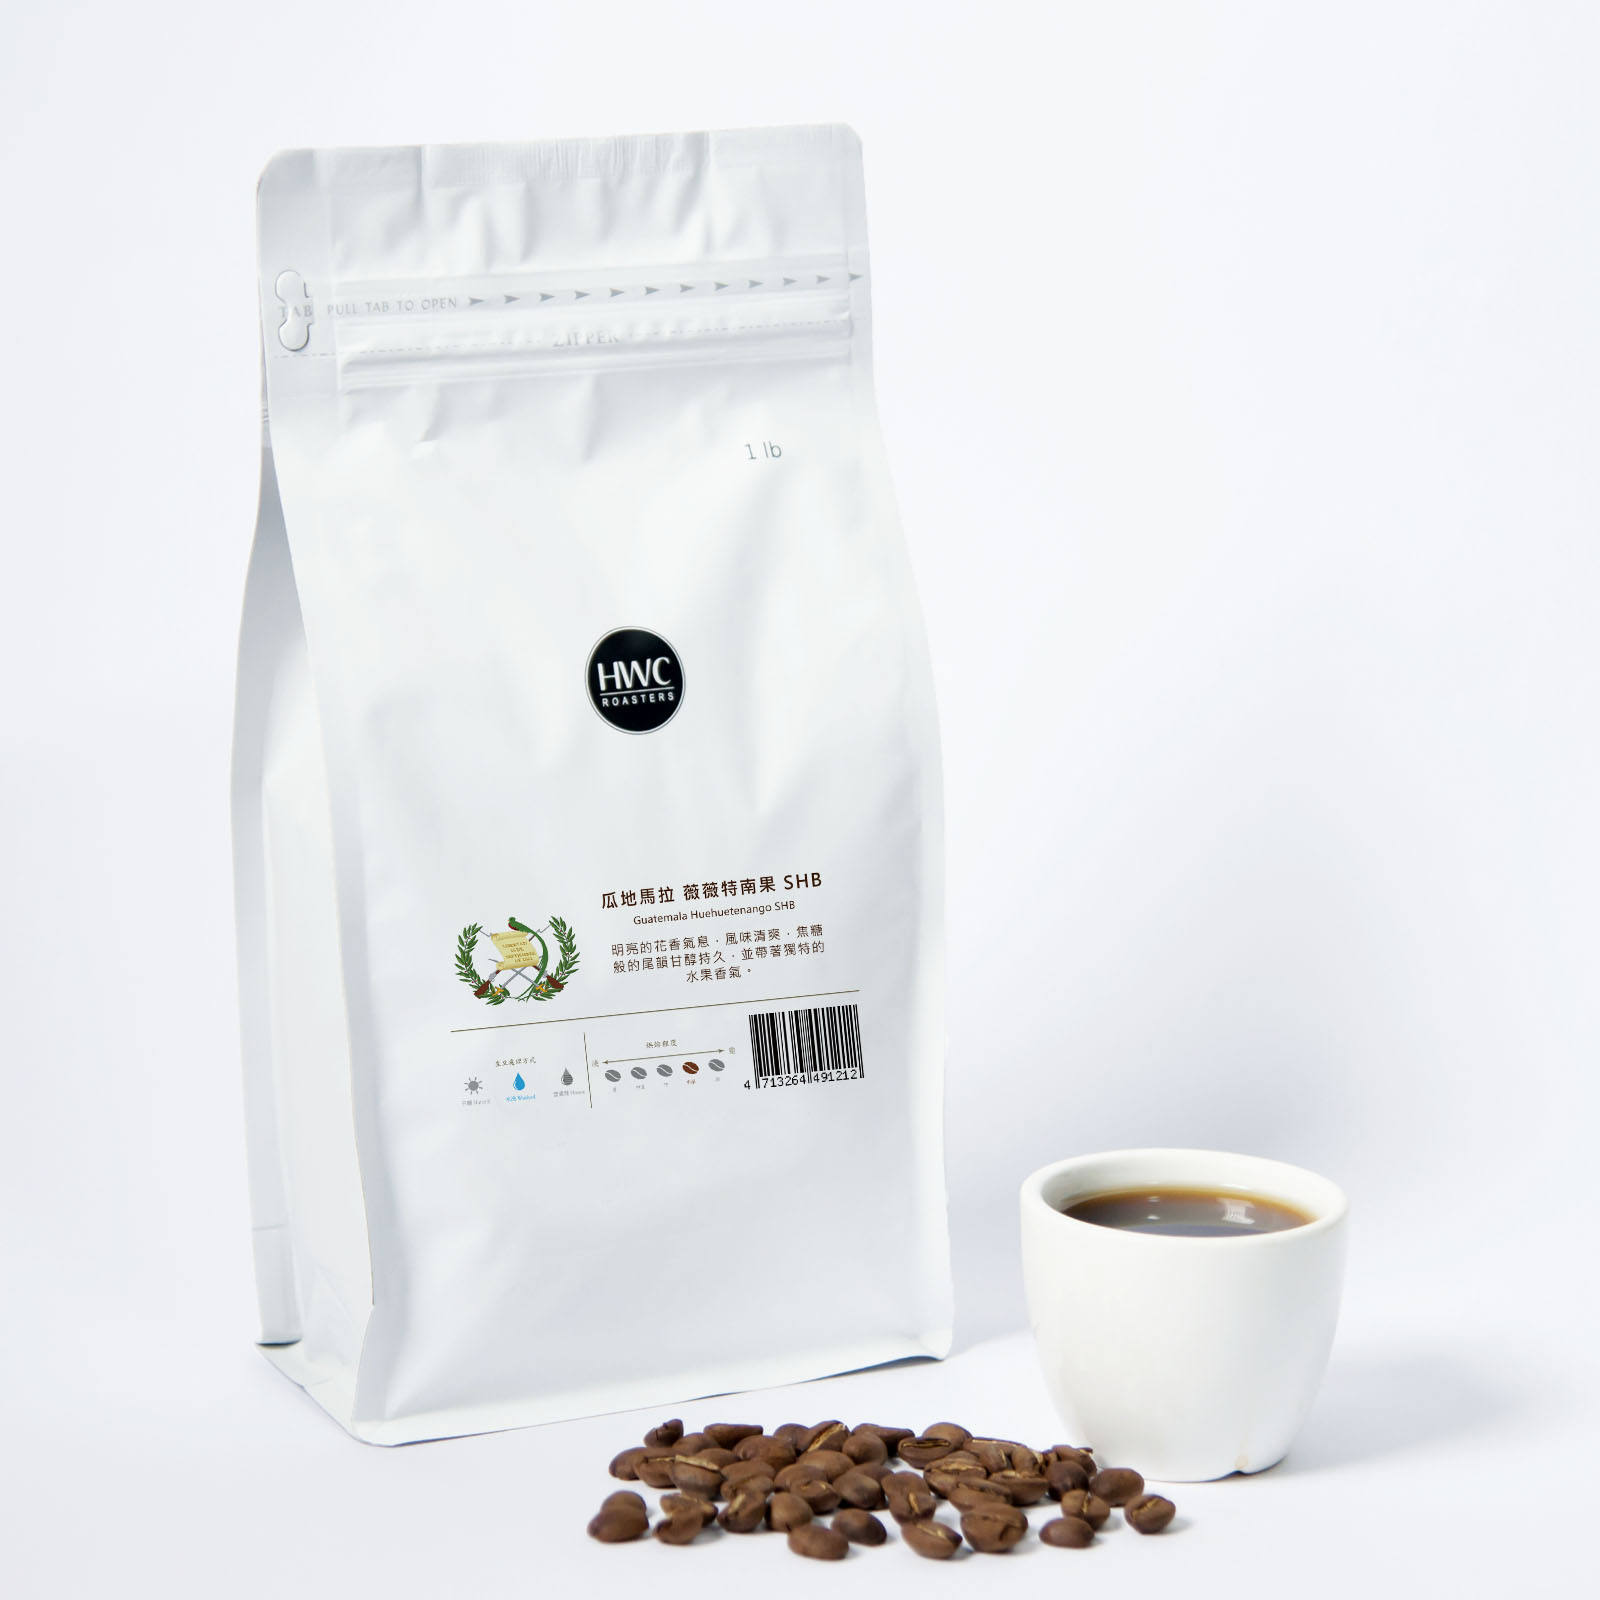 Guatemala Huehuetenango SHB Roasted Coffee Bean Wholesale Arabica